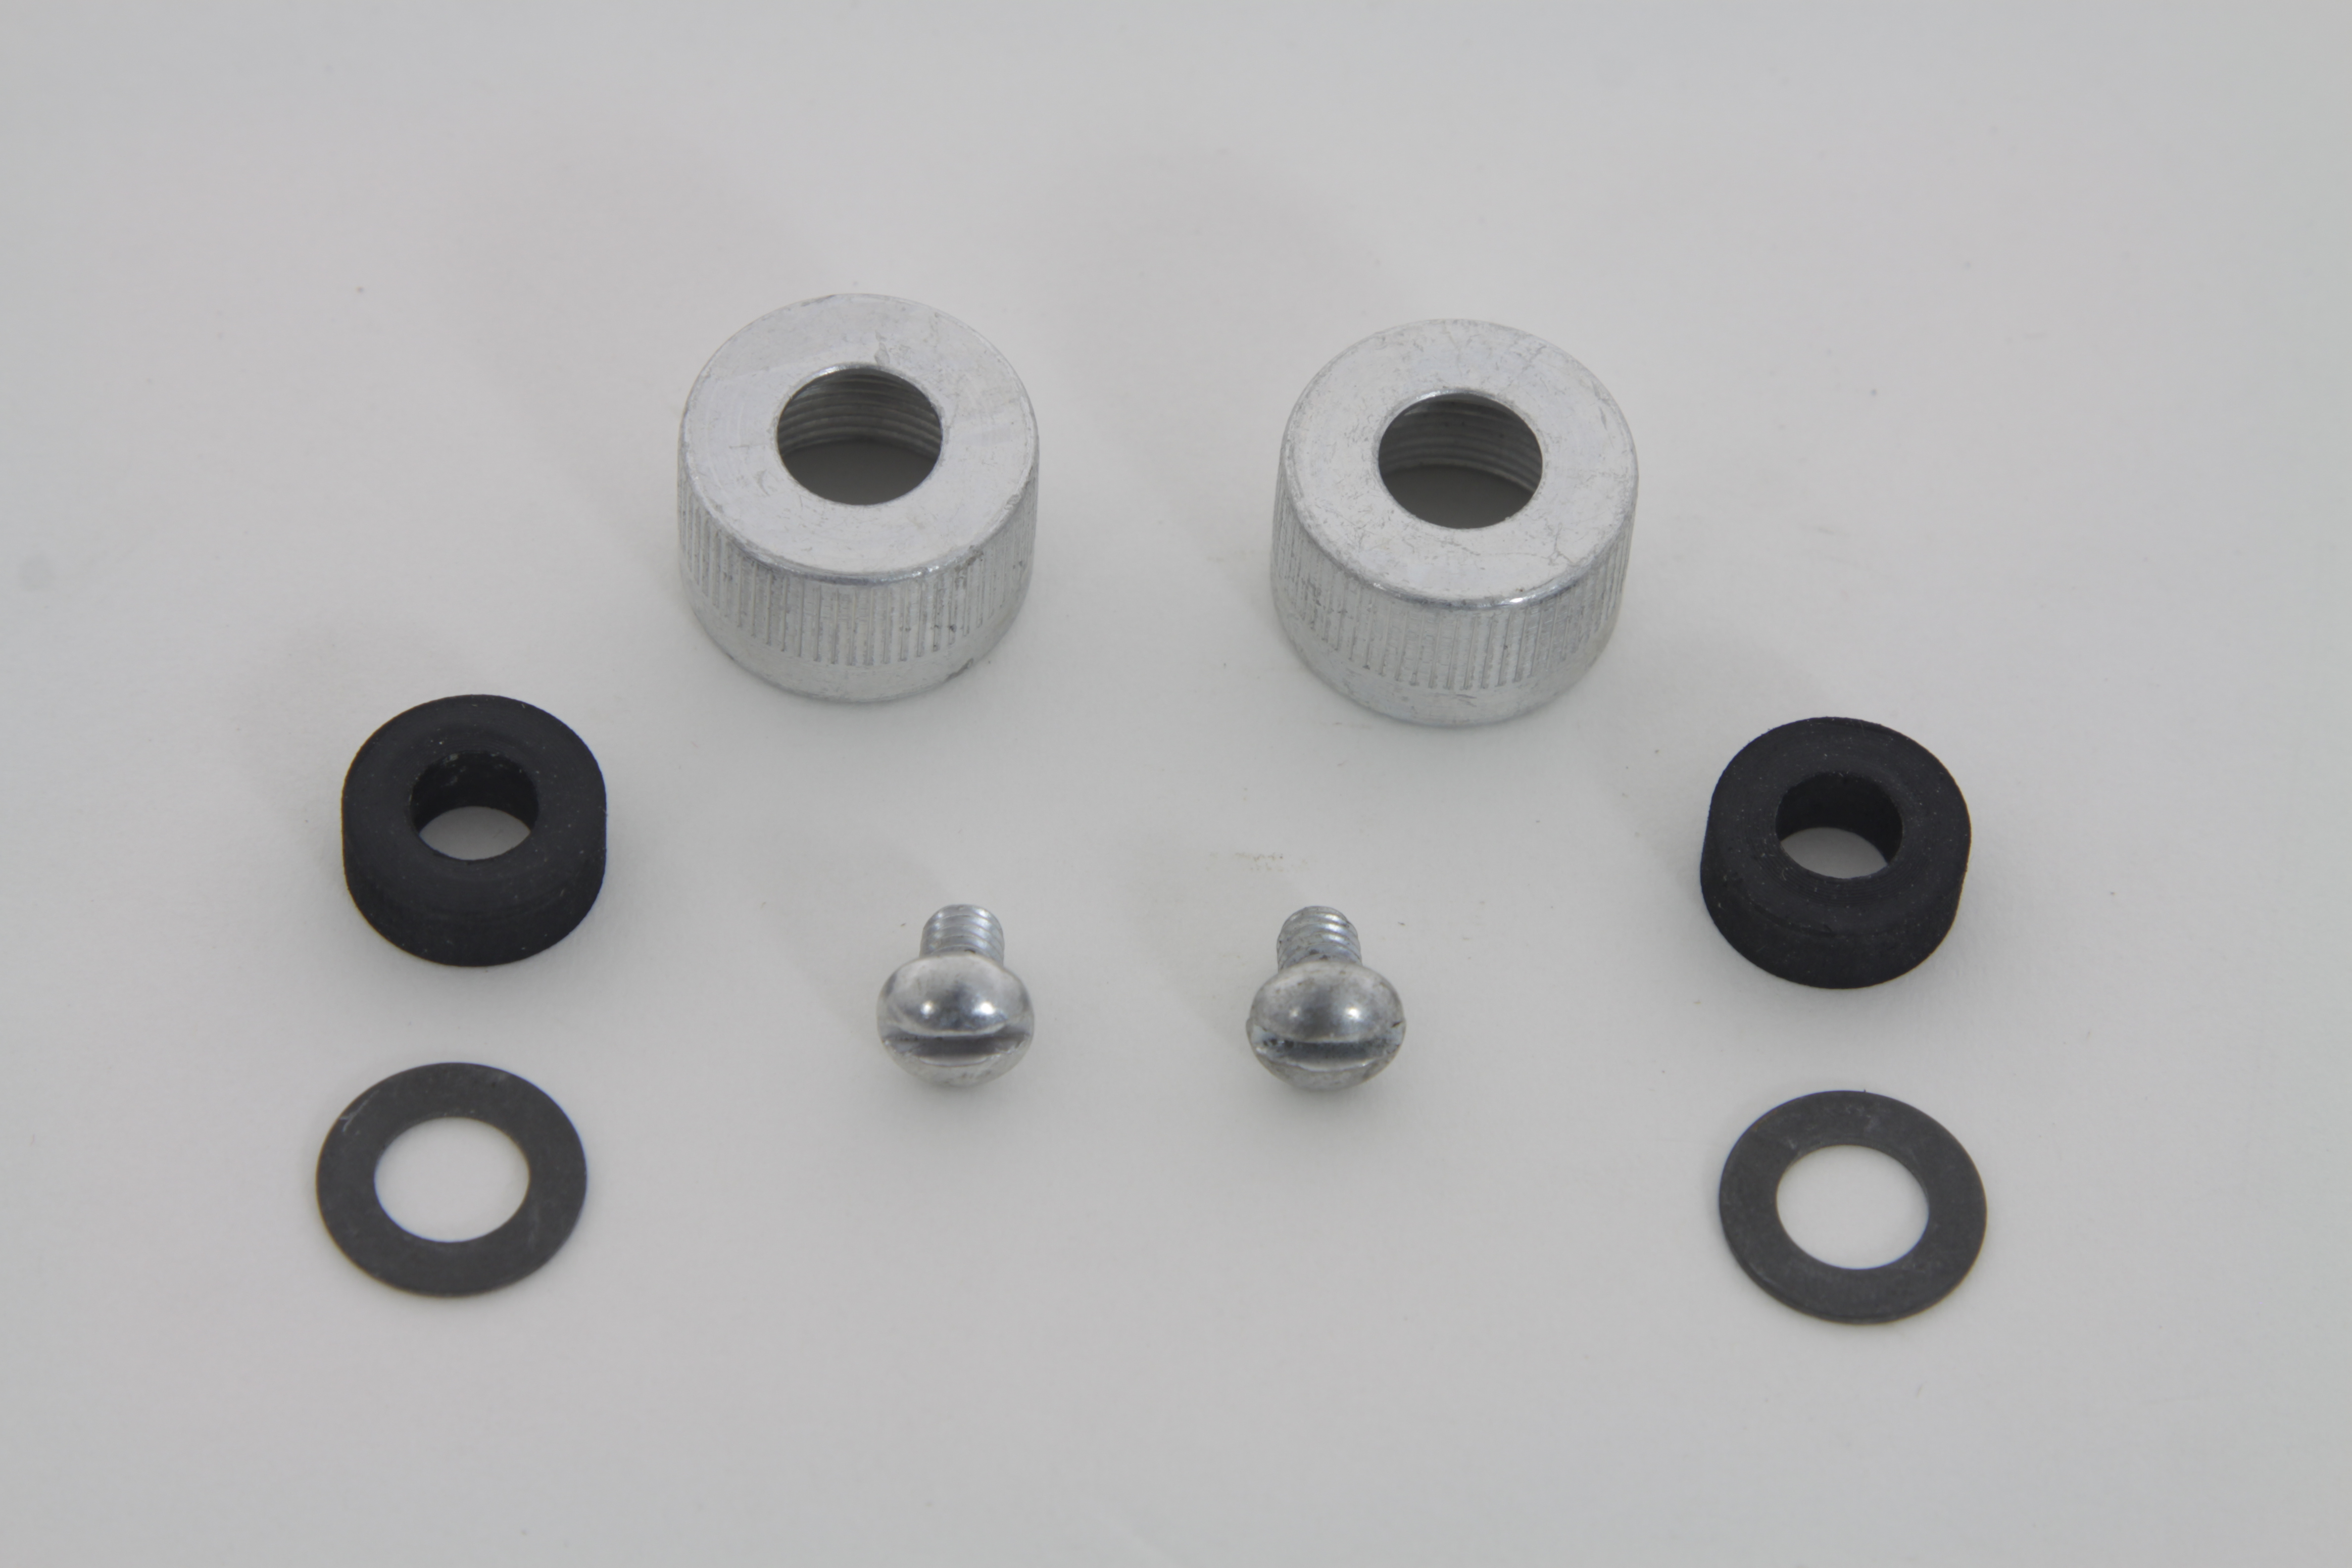 V-Twin 7804-6 - Spark Plug Cable Nuts with Packing